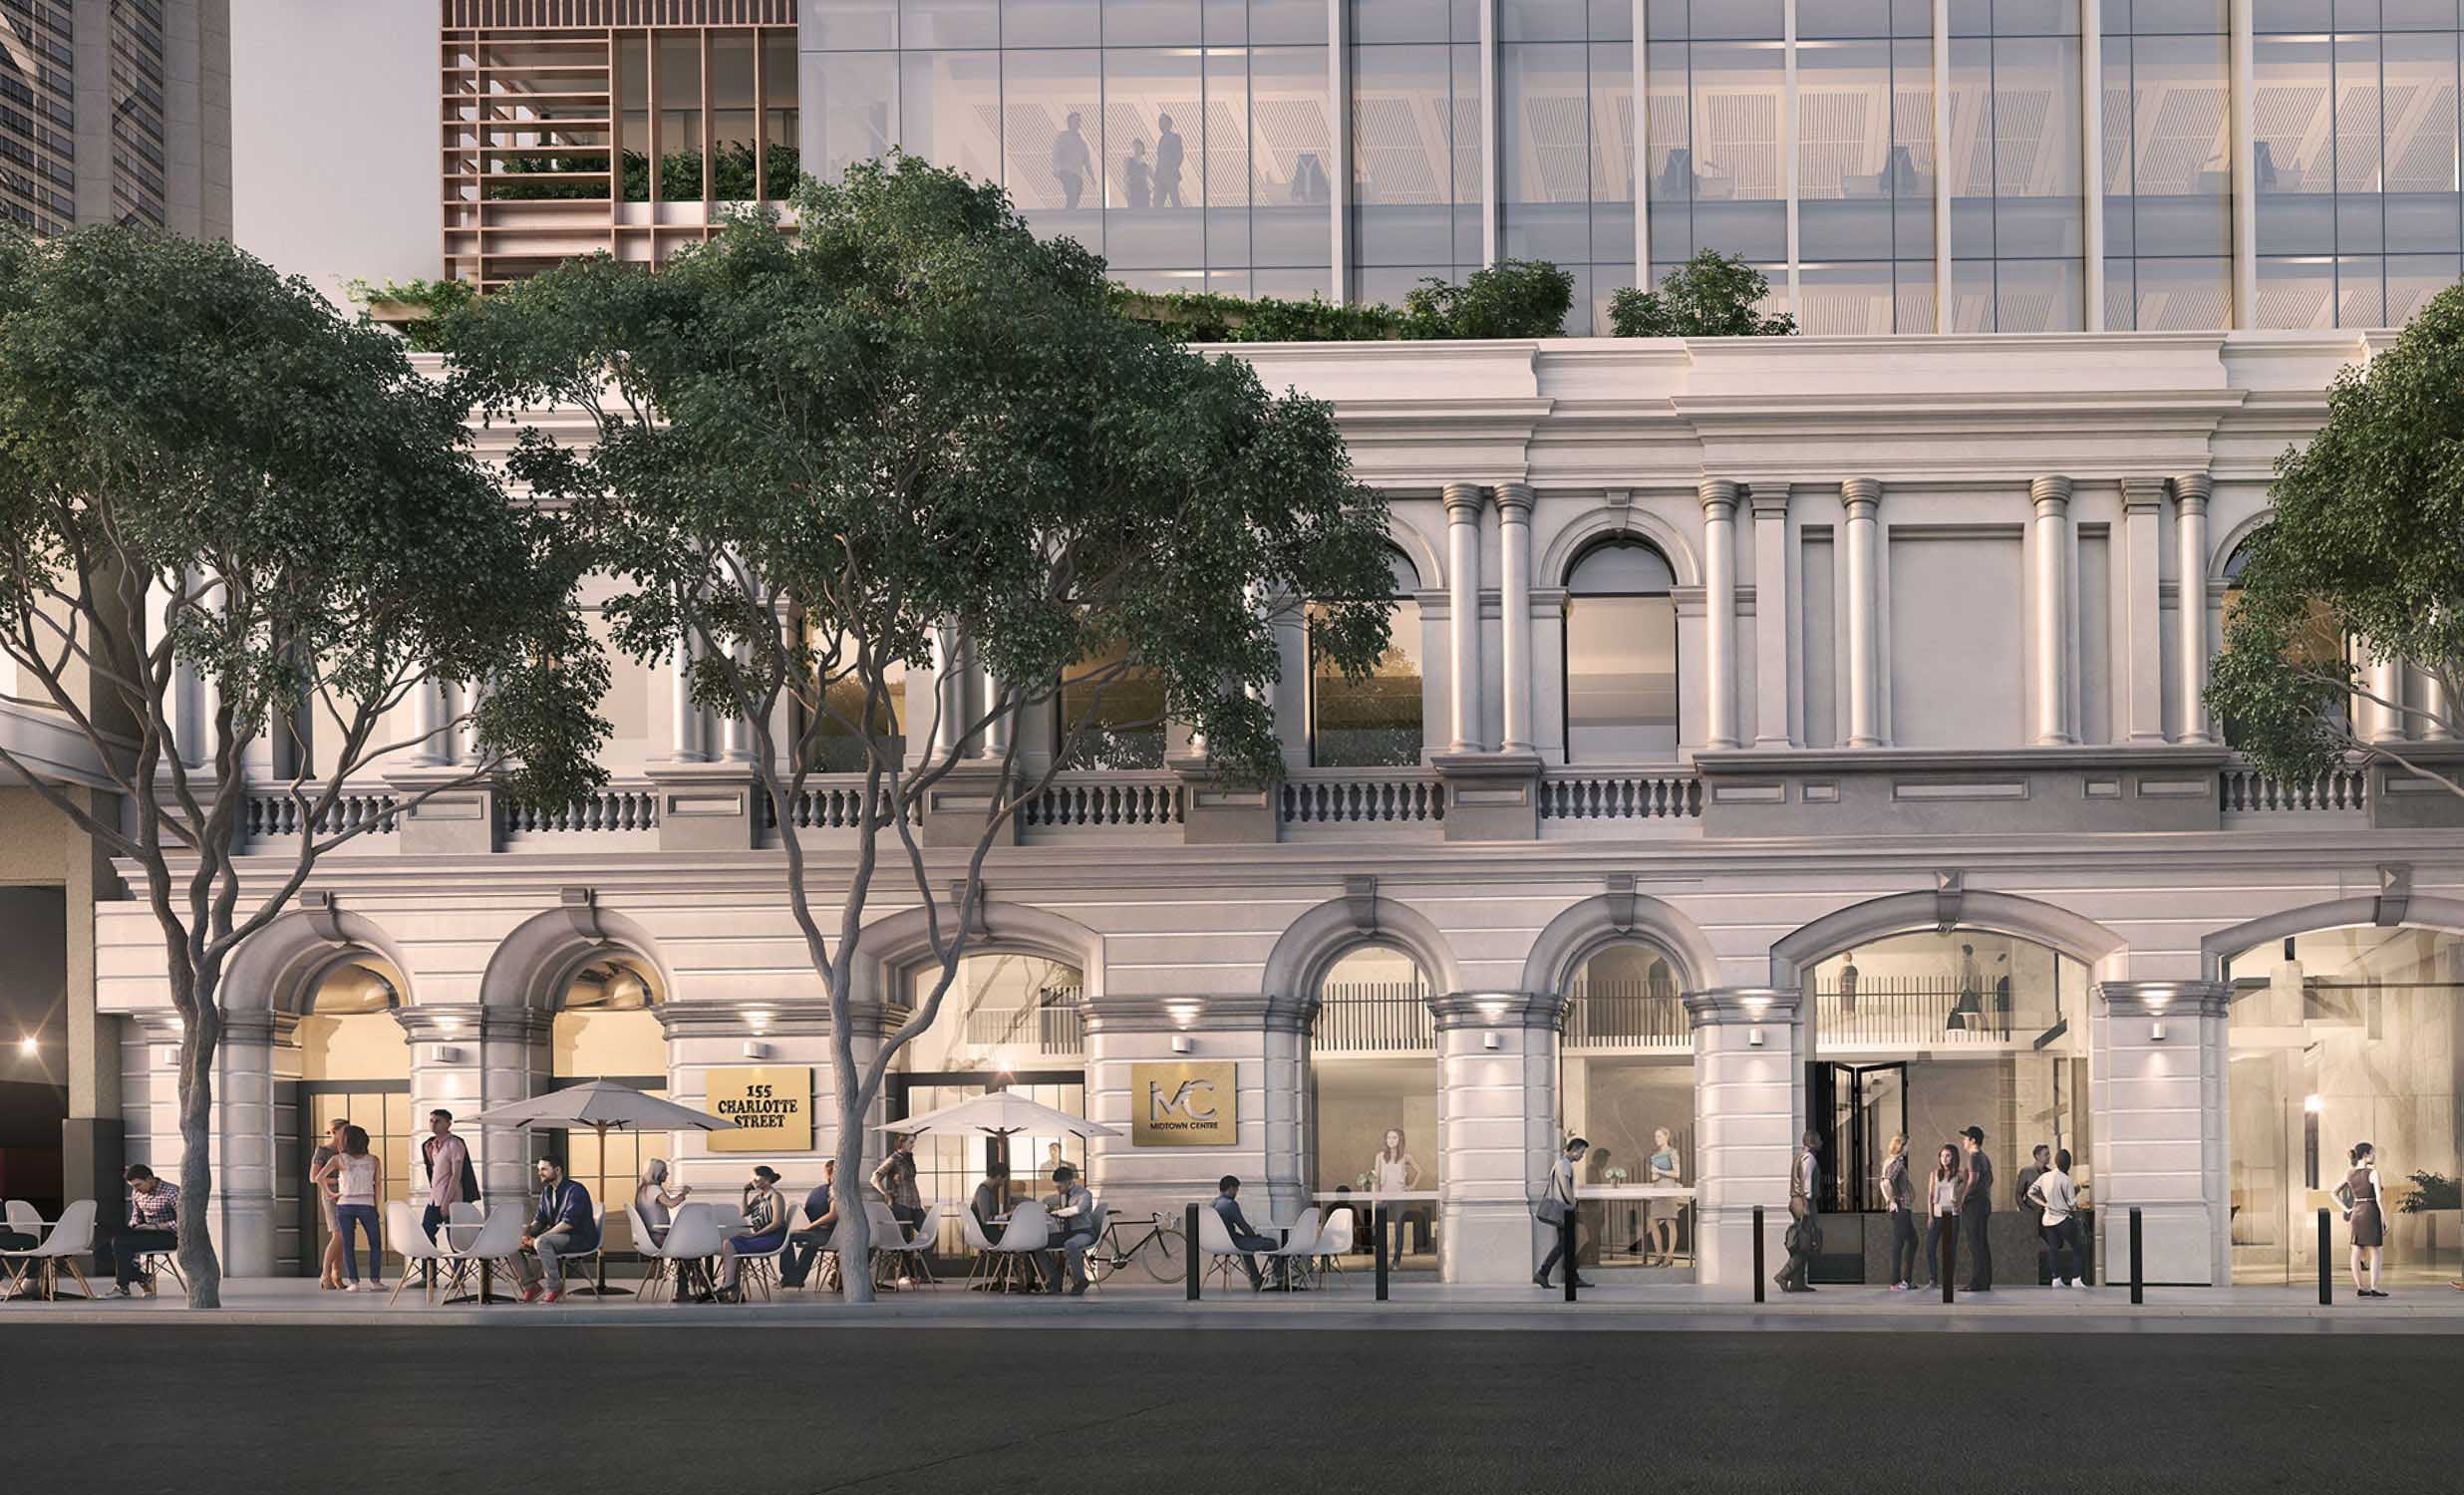 Related Project - MIDTOWN CENTRE